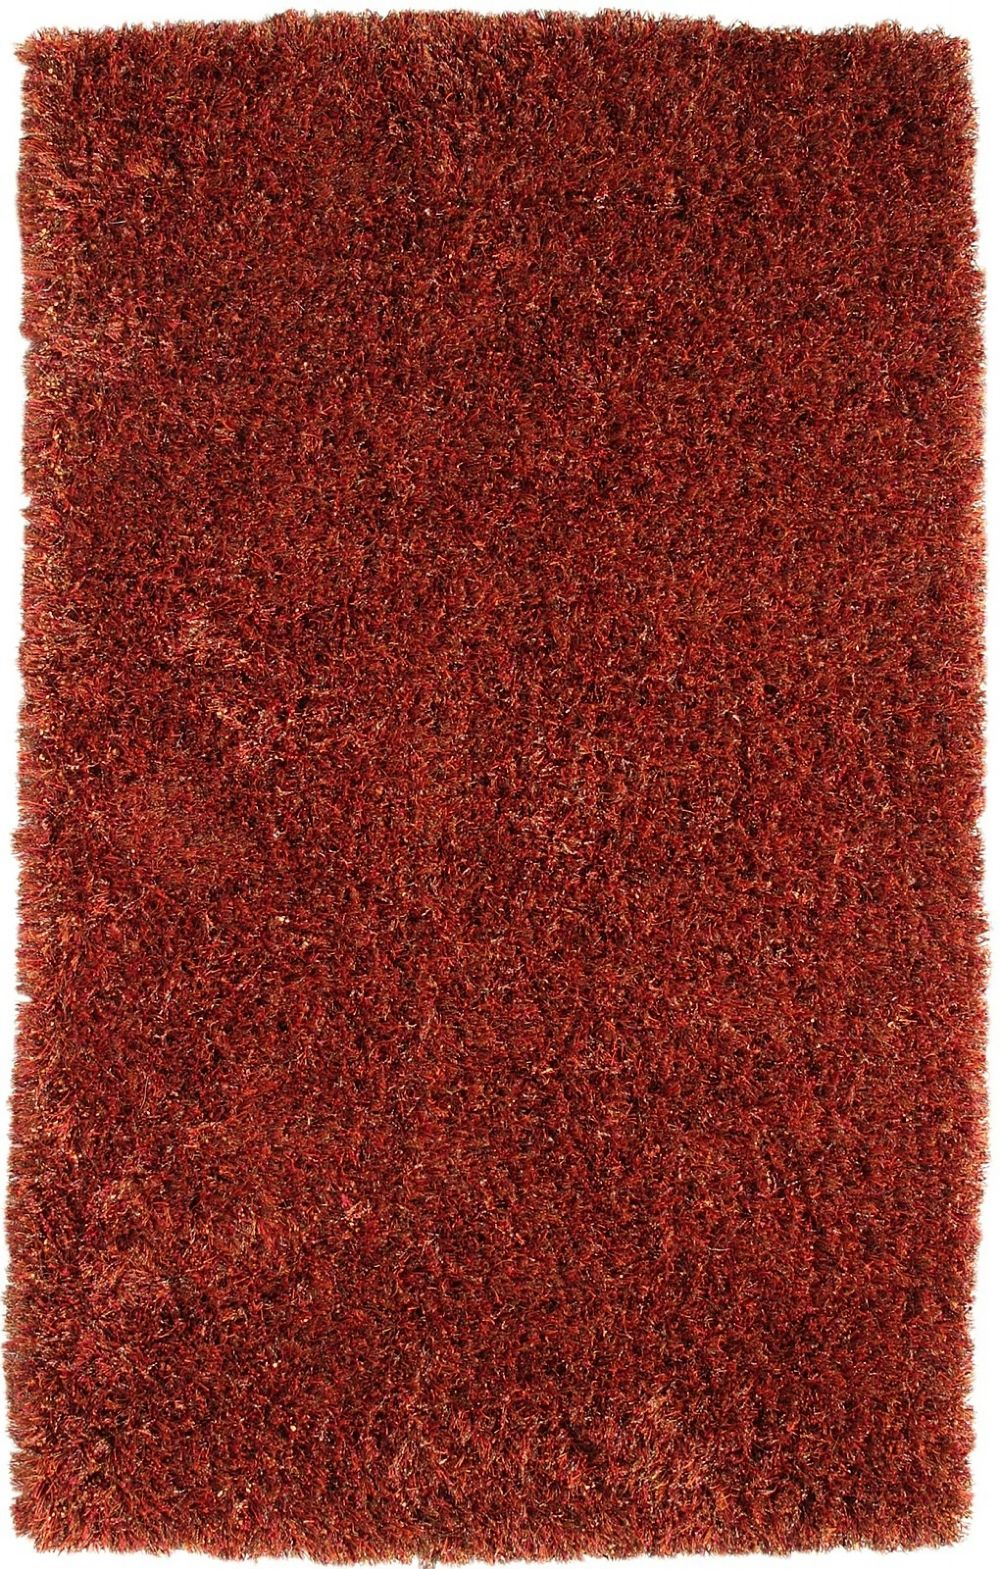 dynamic rugs venetian shag area rug collection